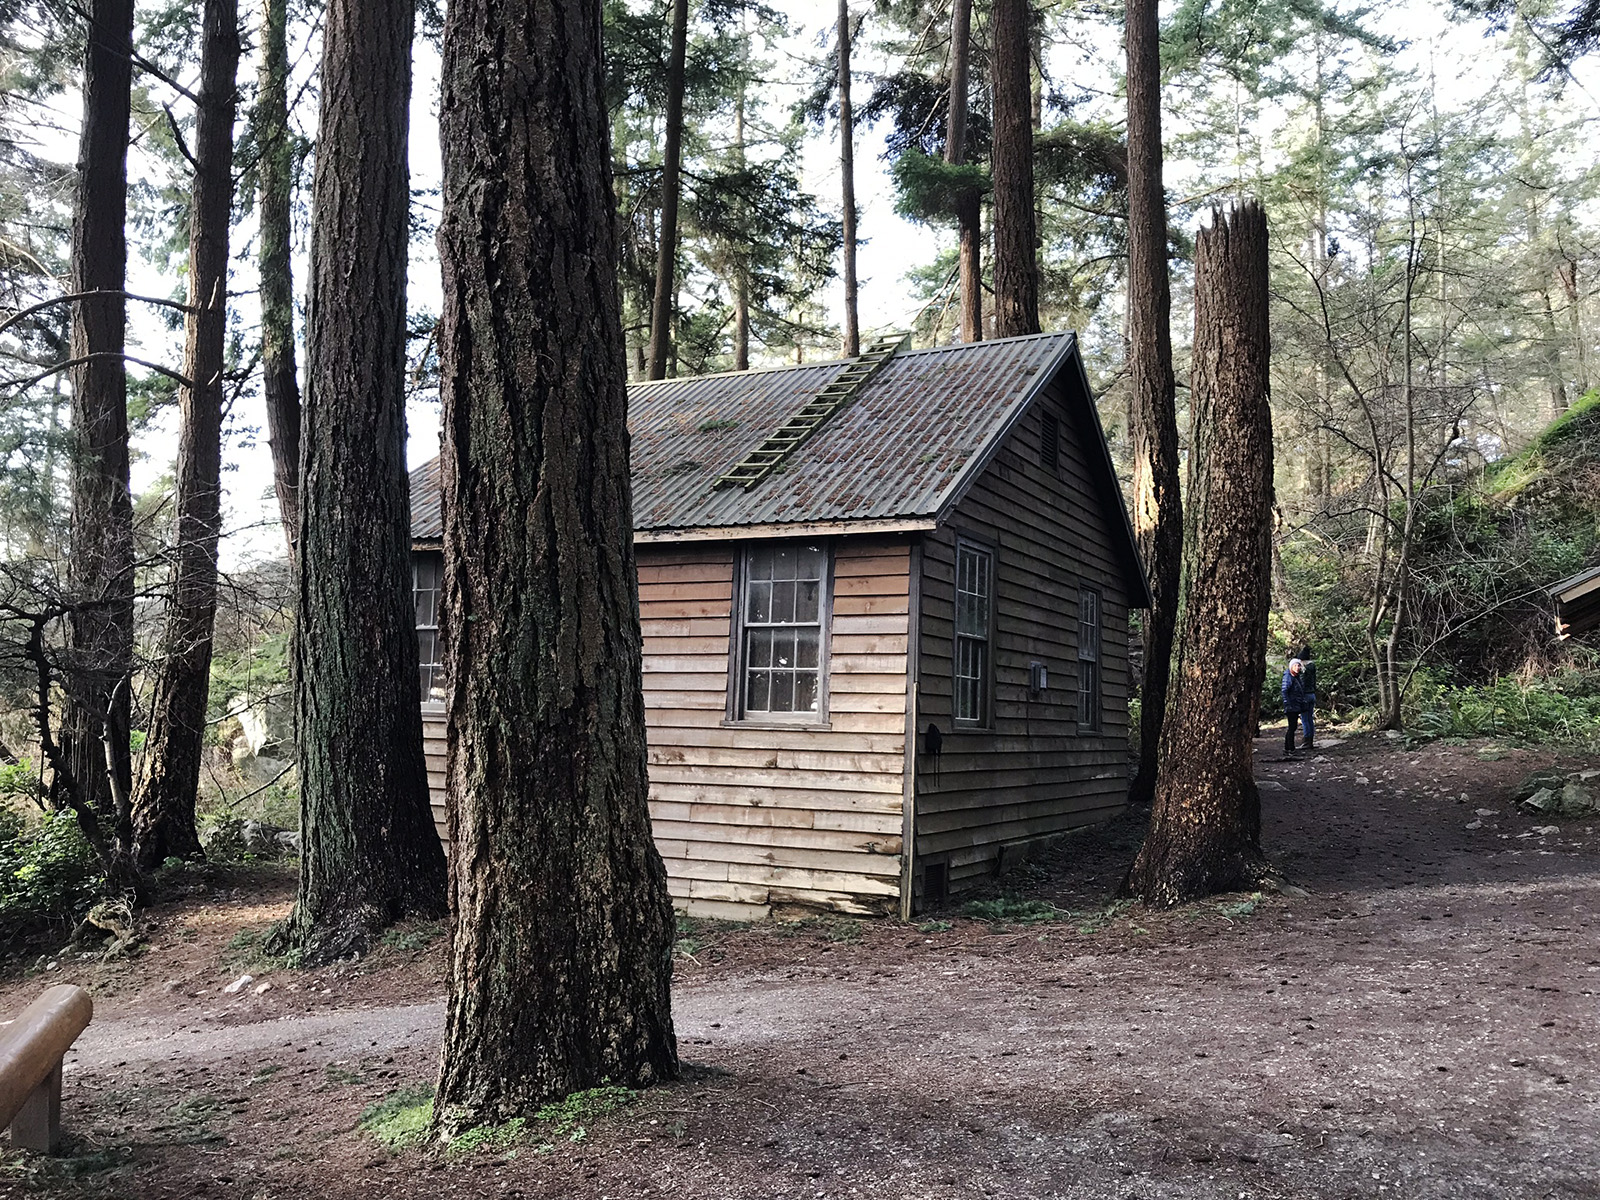 Cabin in the woods, Lighthouse Park in West Vancouver © Tanya Clarke 2018